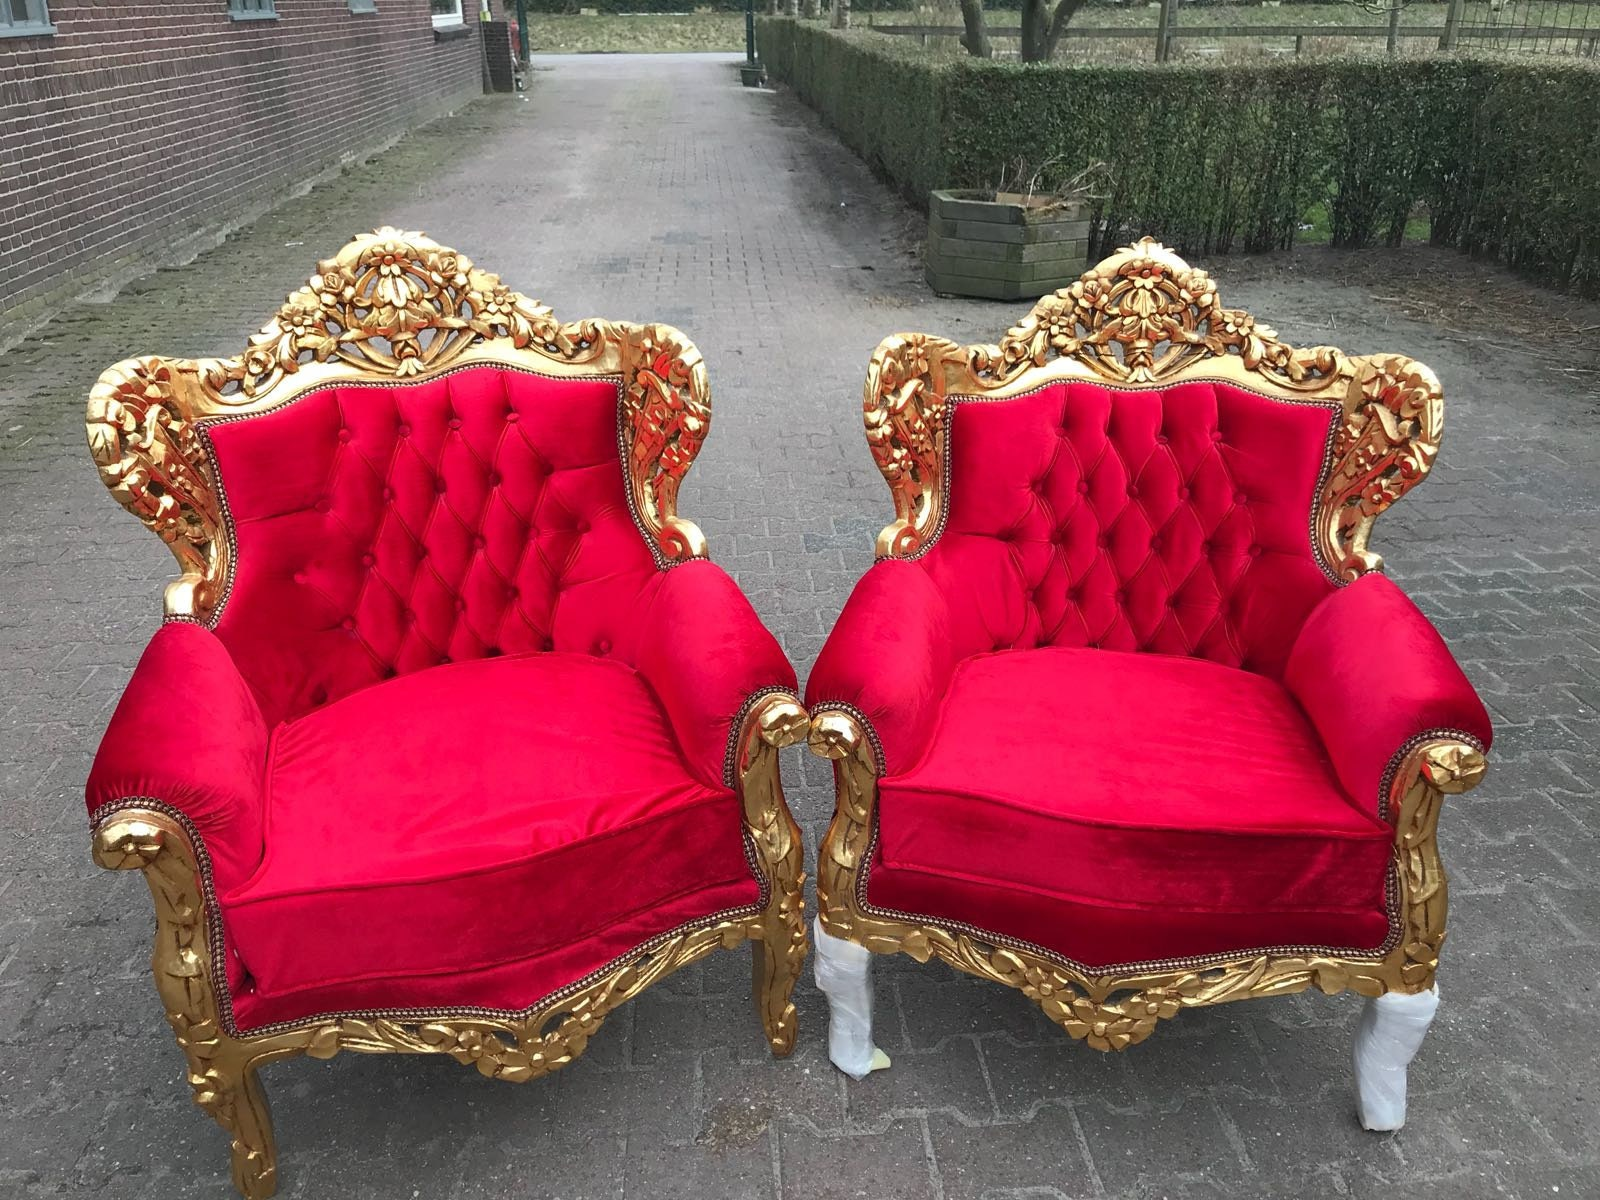 Baroque Settee Chairs Baroque Furniture Chairs Antique Furniture Rococo Tufted  Chair Refinish Gold Leaf Tufted Red Fabric Interior Design